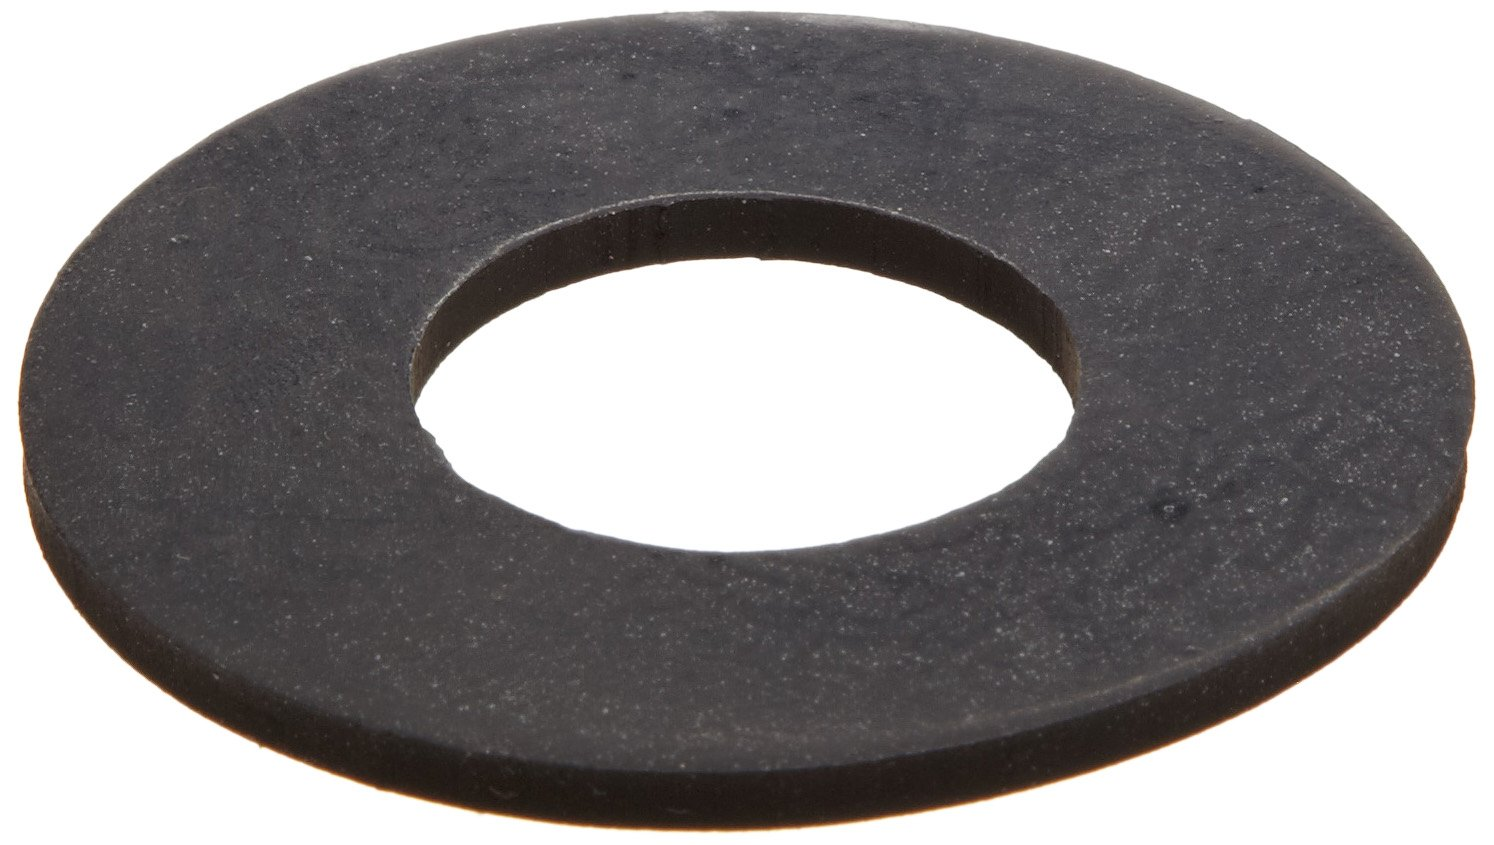 Neoprene Flange Gasket, Ring, Black, Fits Class 150 Flange, 1/8'' Thick, 3'' Pipe Size, 2-7/8'' ID, 4-7/8'' OD (Pack of 6) by Small Parts